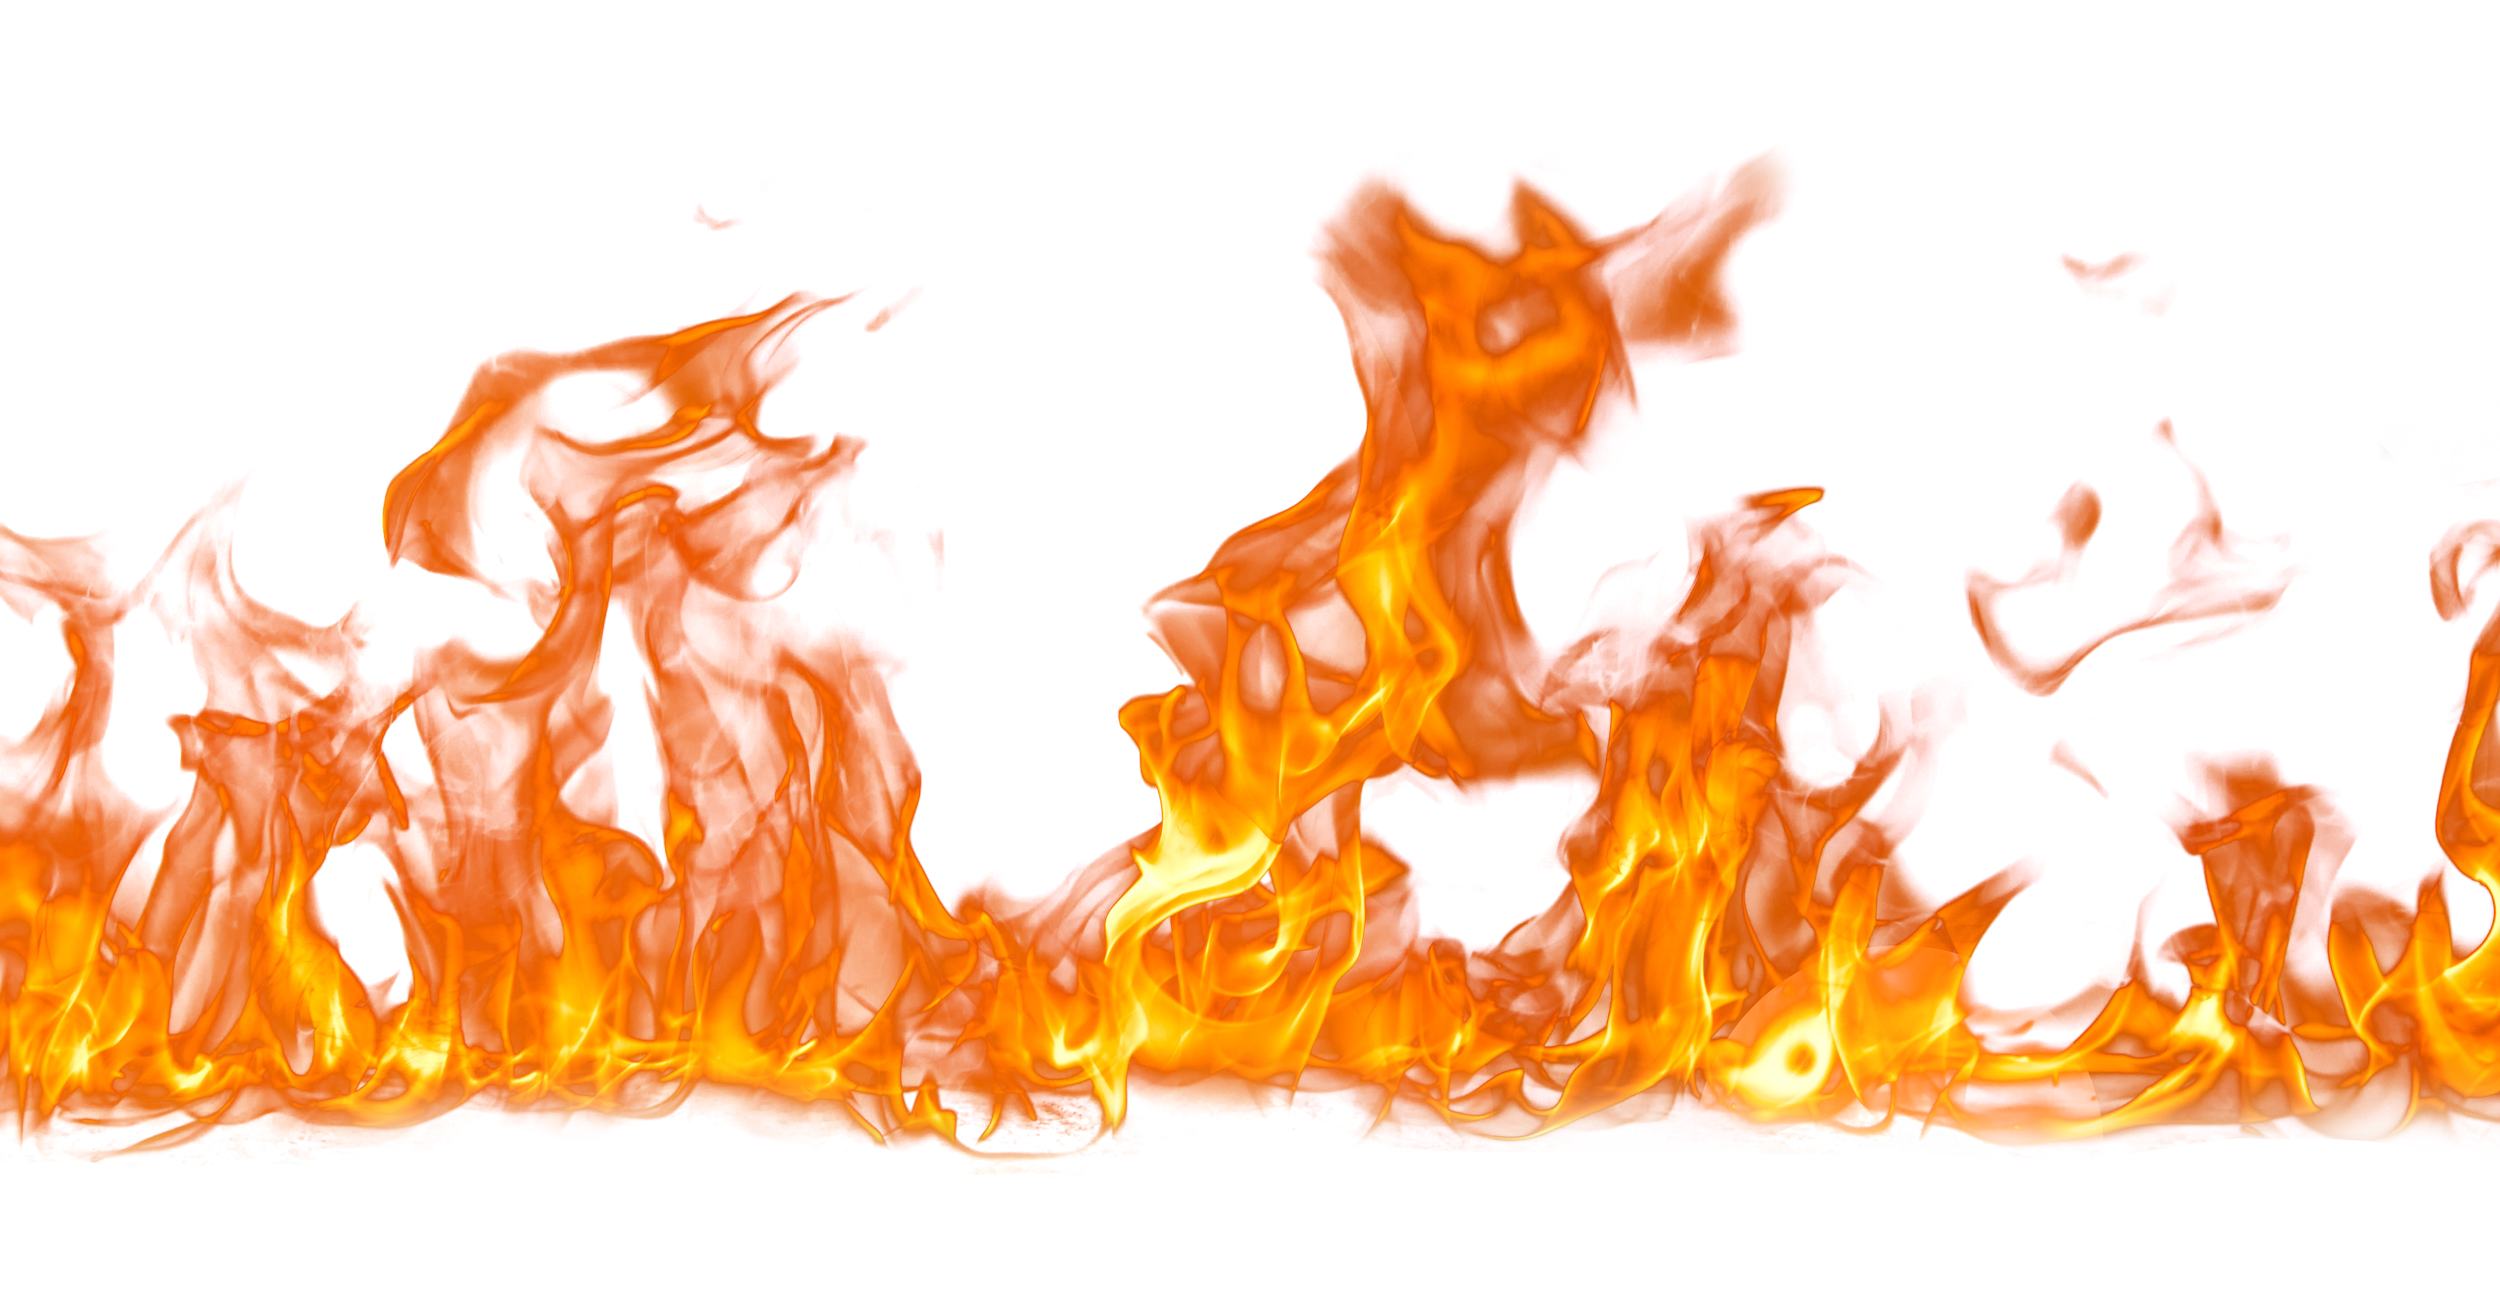 Fire Flame on Ground PNG Image